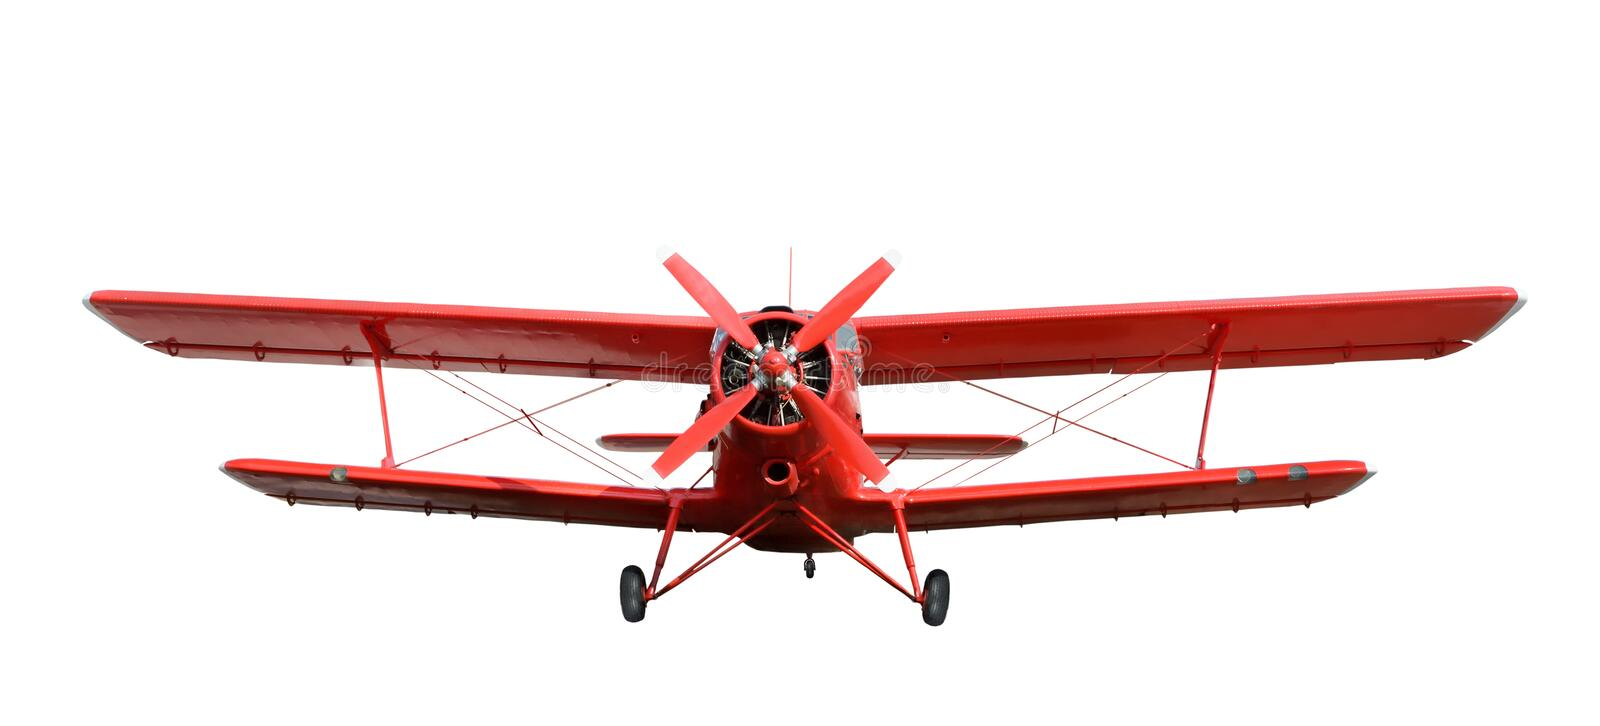 Red airplane biplane with piston engine. Front view of red airplane biplane with piston engine and propeller. Isolated on a white background royalty free stock photography